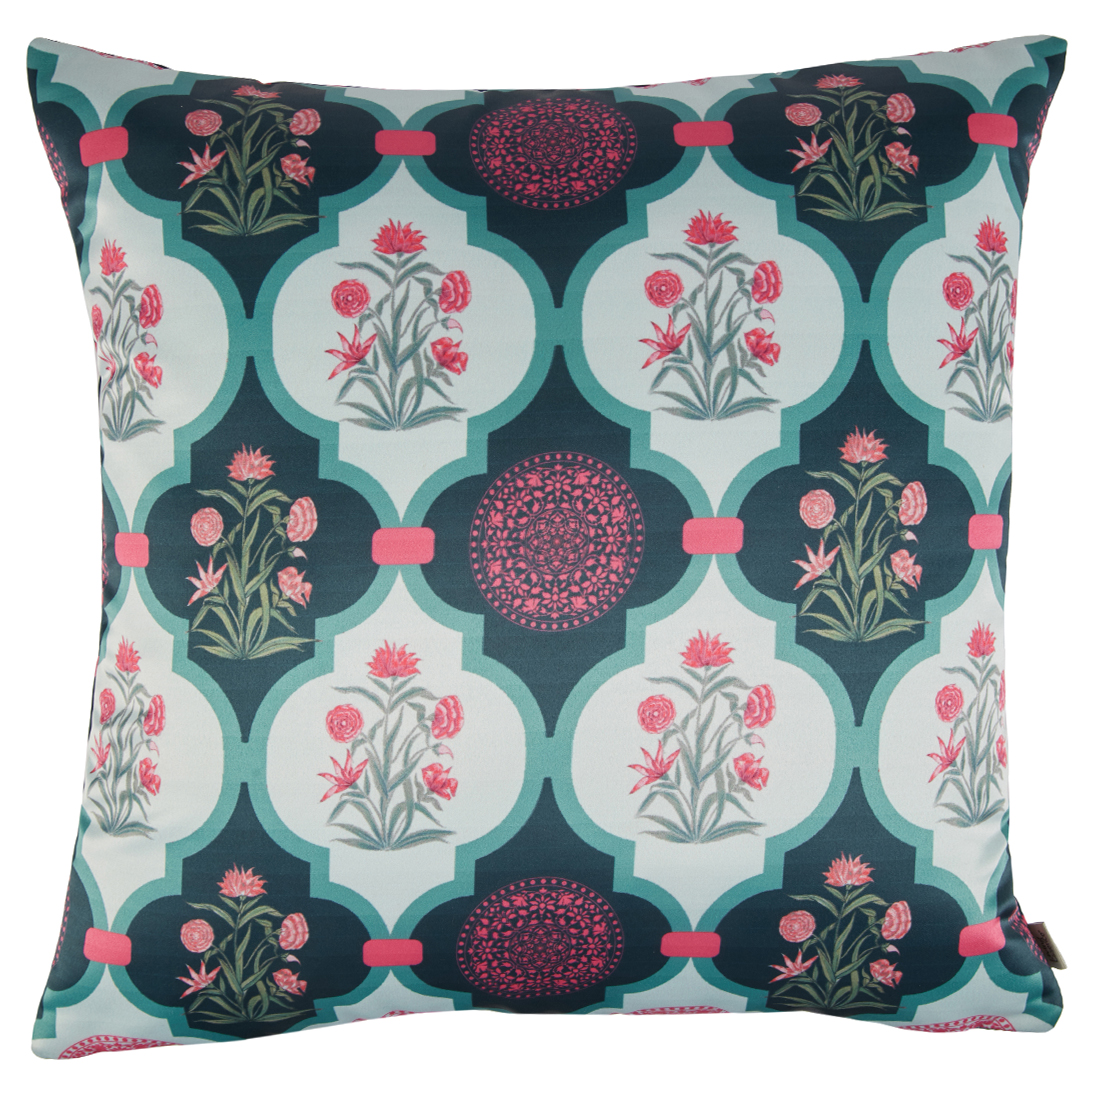 Digital Cushion Cover Ogee Motif Cushion Covers in Poly Satin Colour by Living Essence